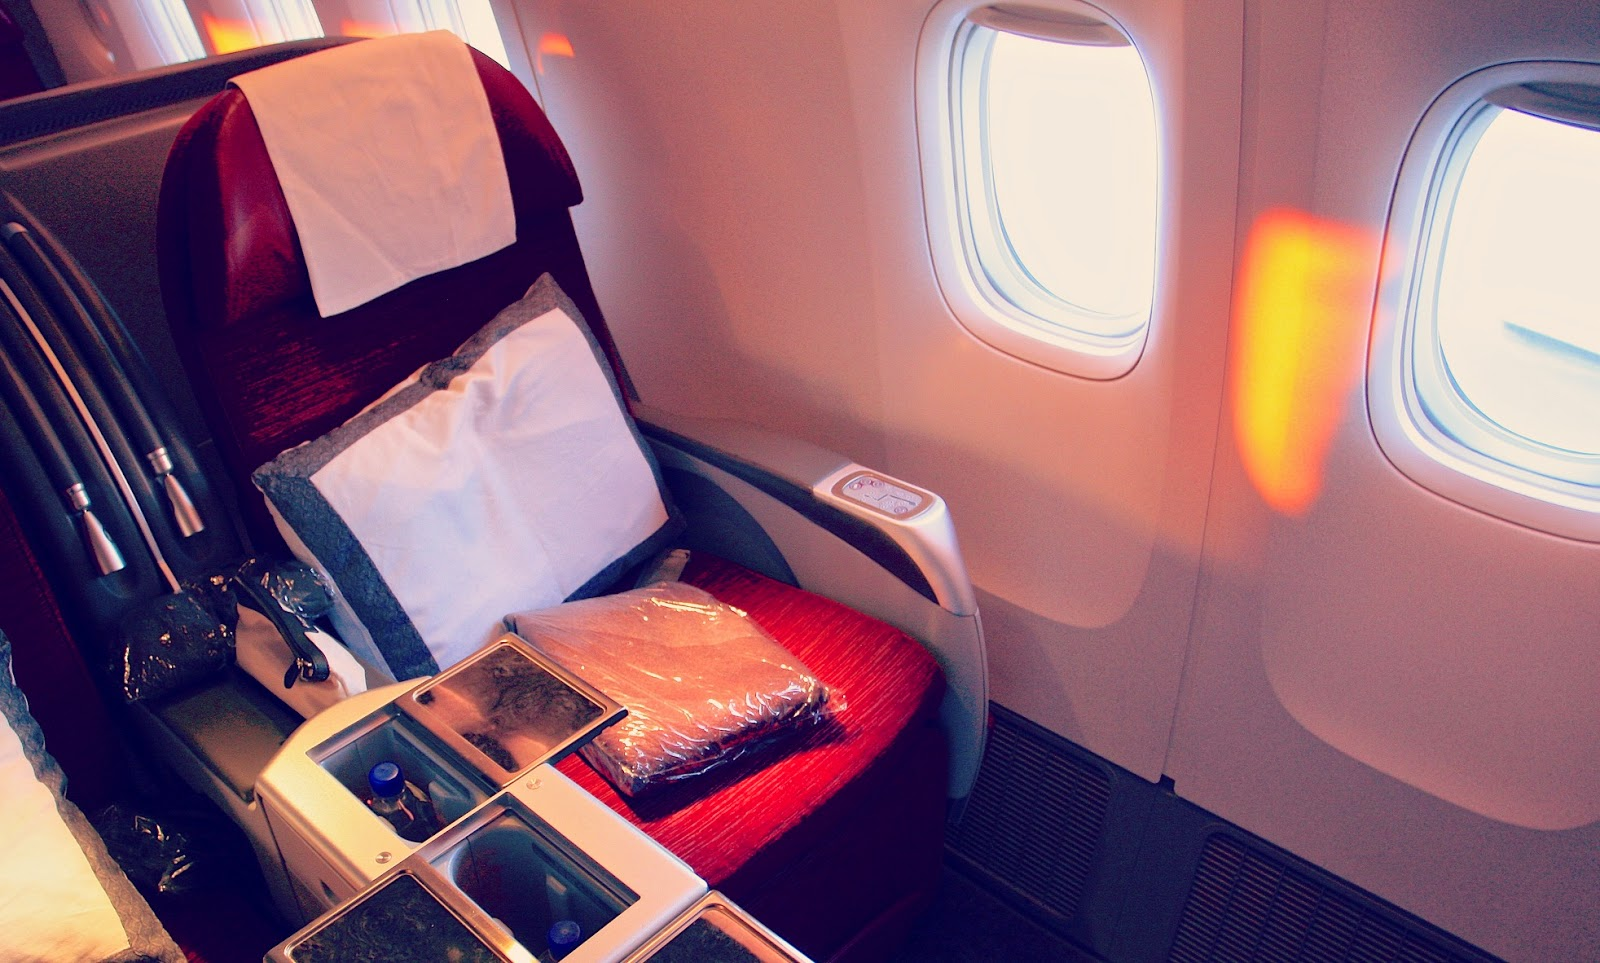 My private writing atelier at 36,000 feet with a window as a muse